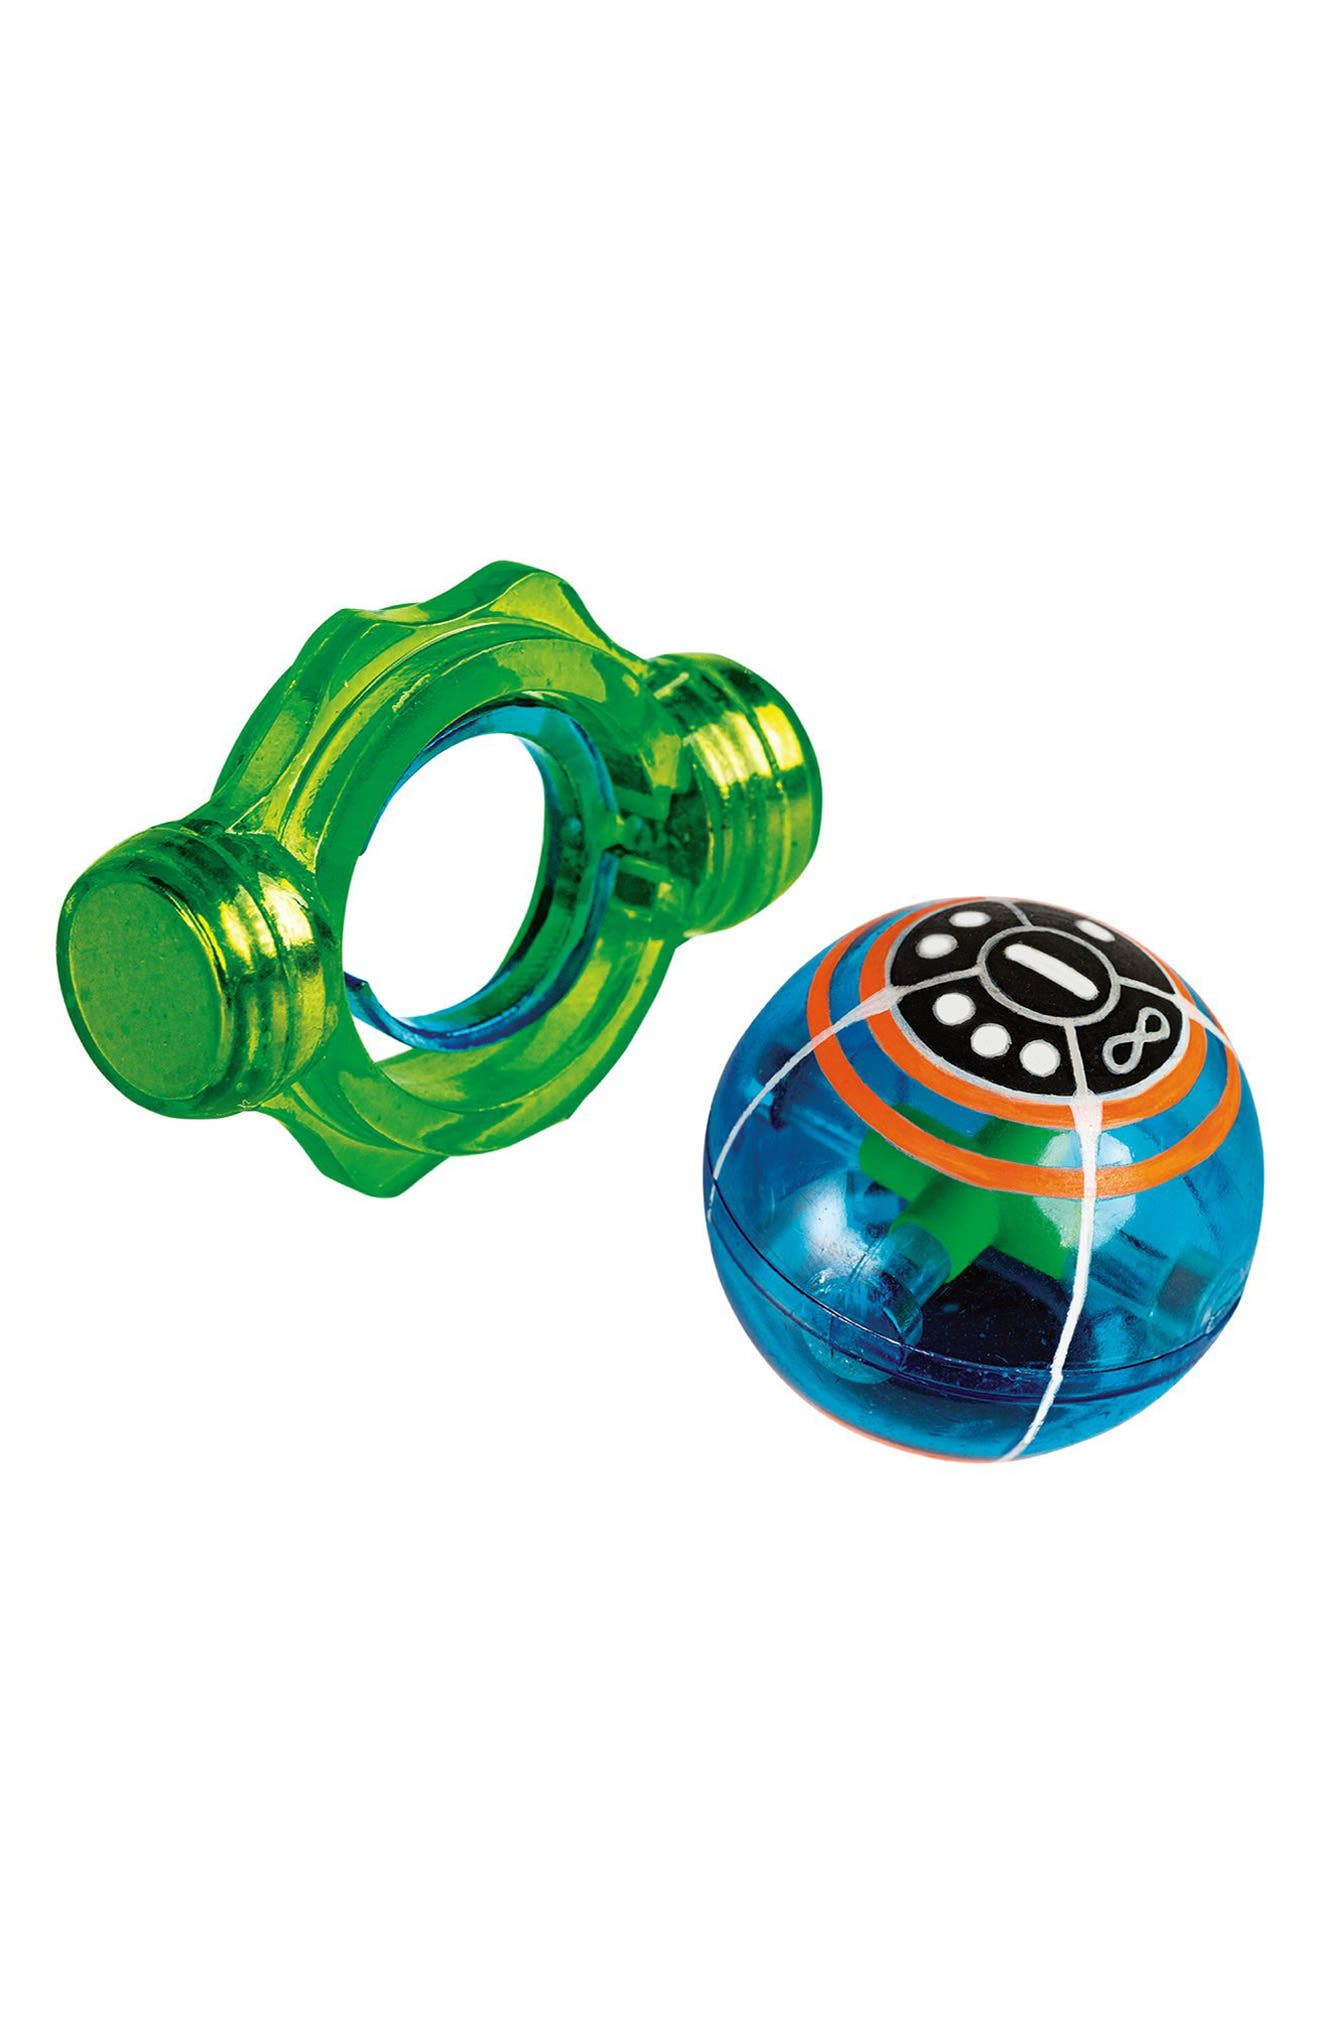 Main Image - Diggin Spinos Solo 2-Piece Magnetic Spin Toy